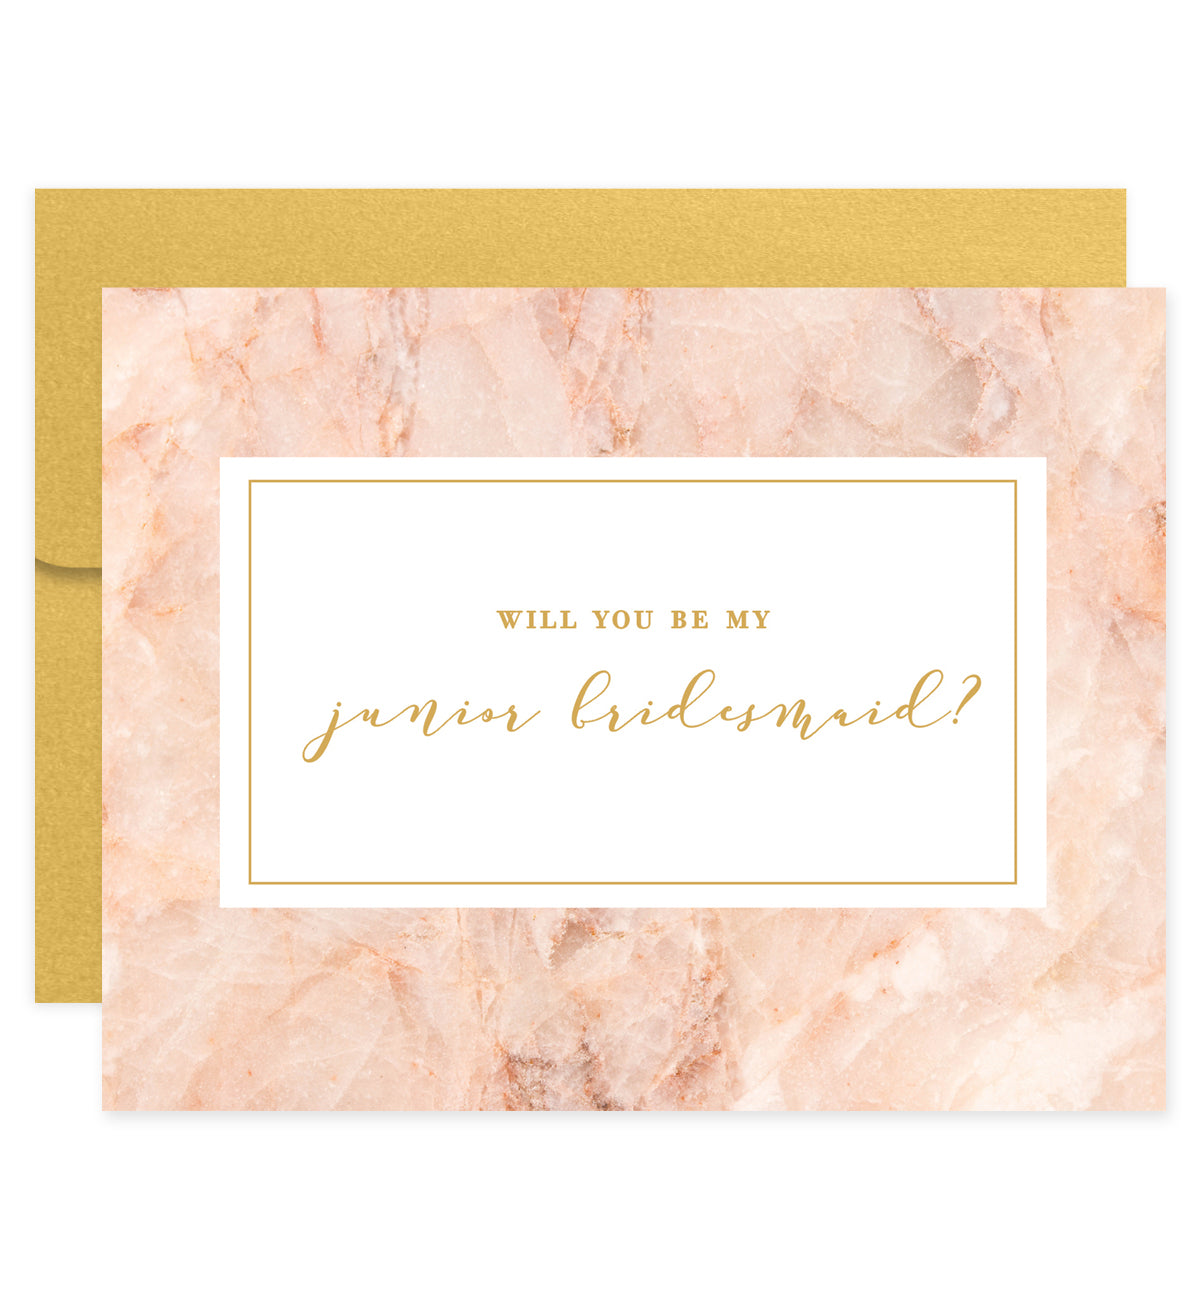 Will You Be My Bridesmaid? Pink + Gold Card | Fiona